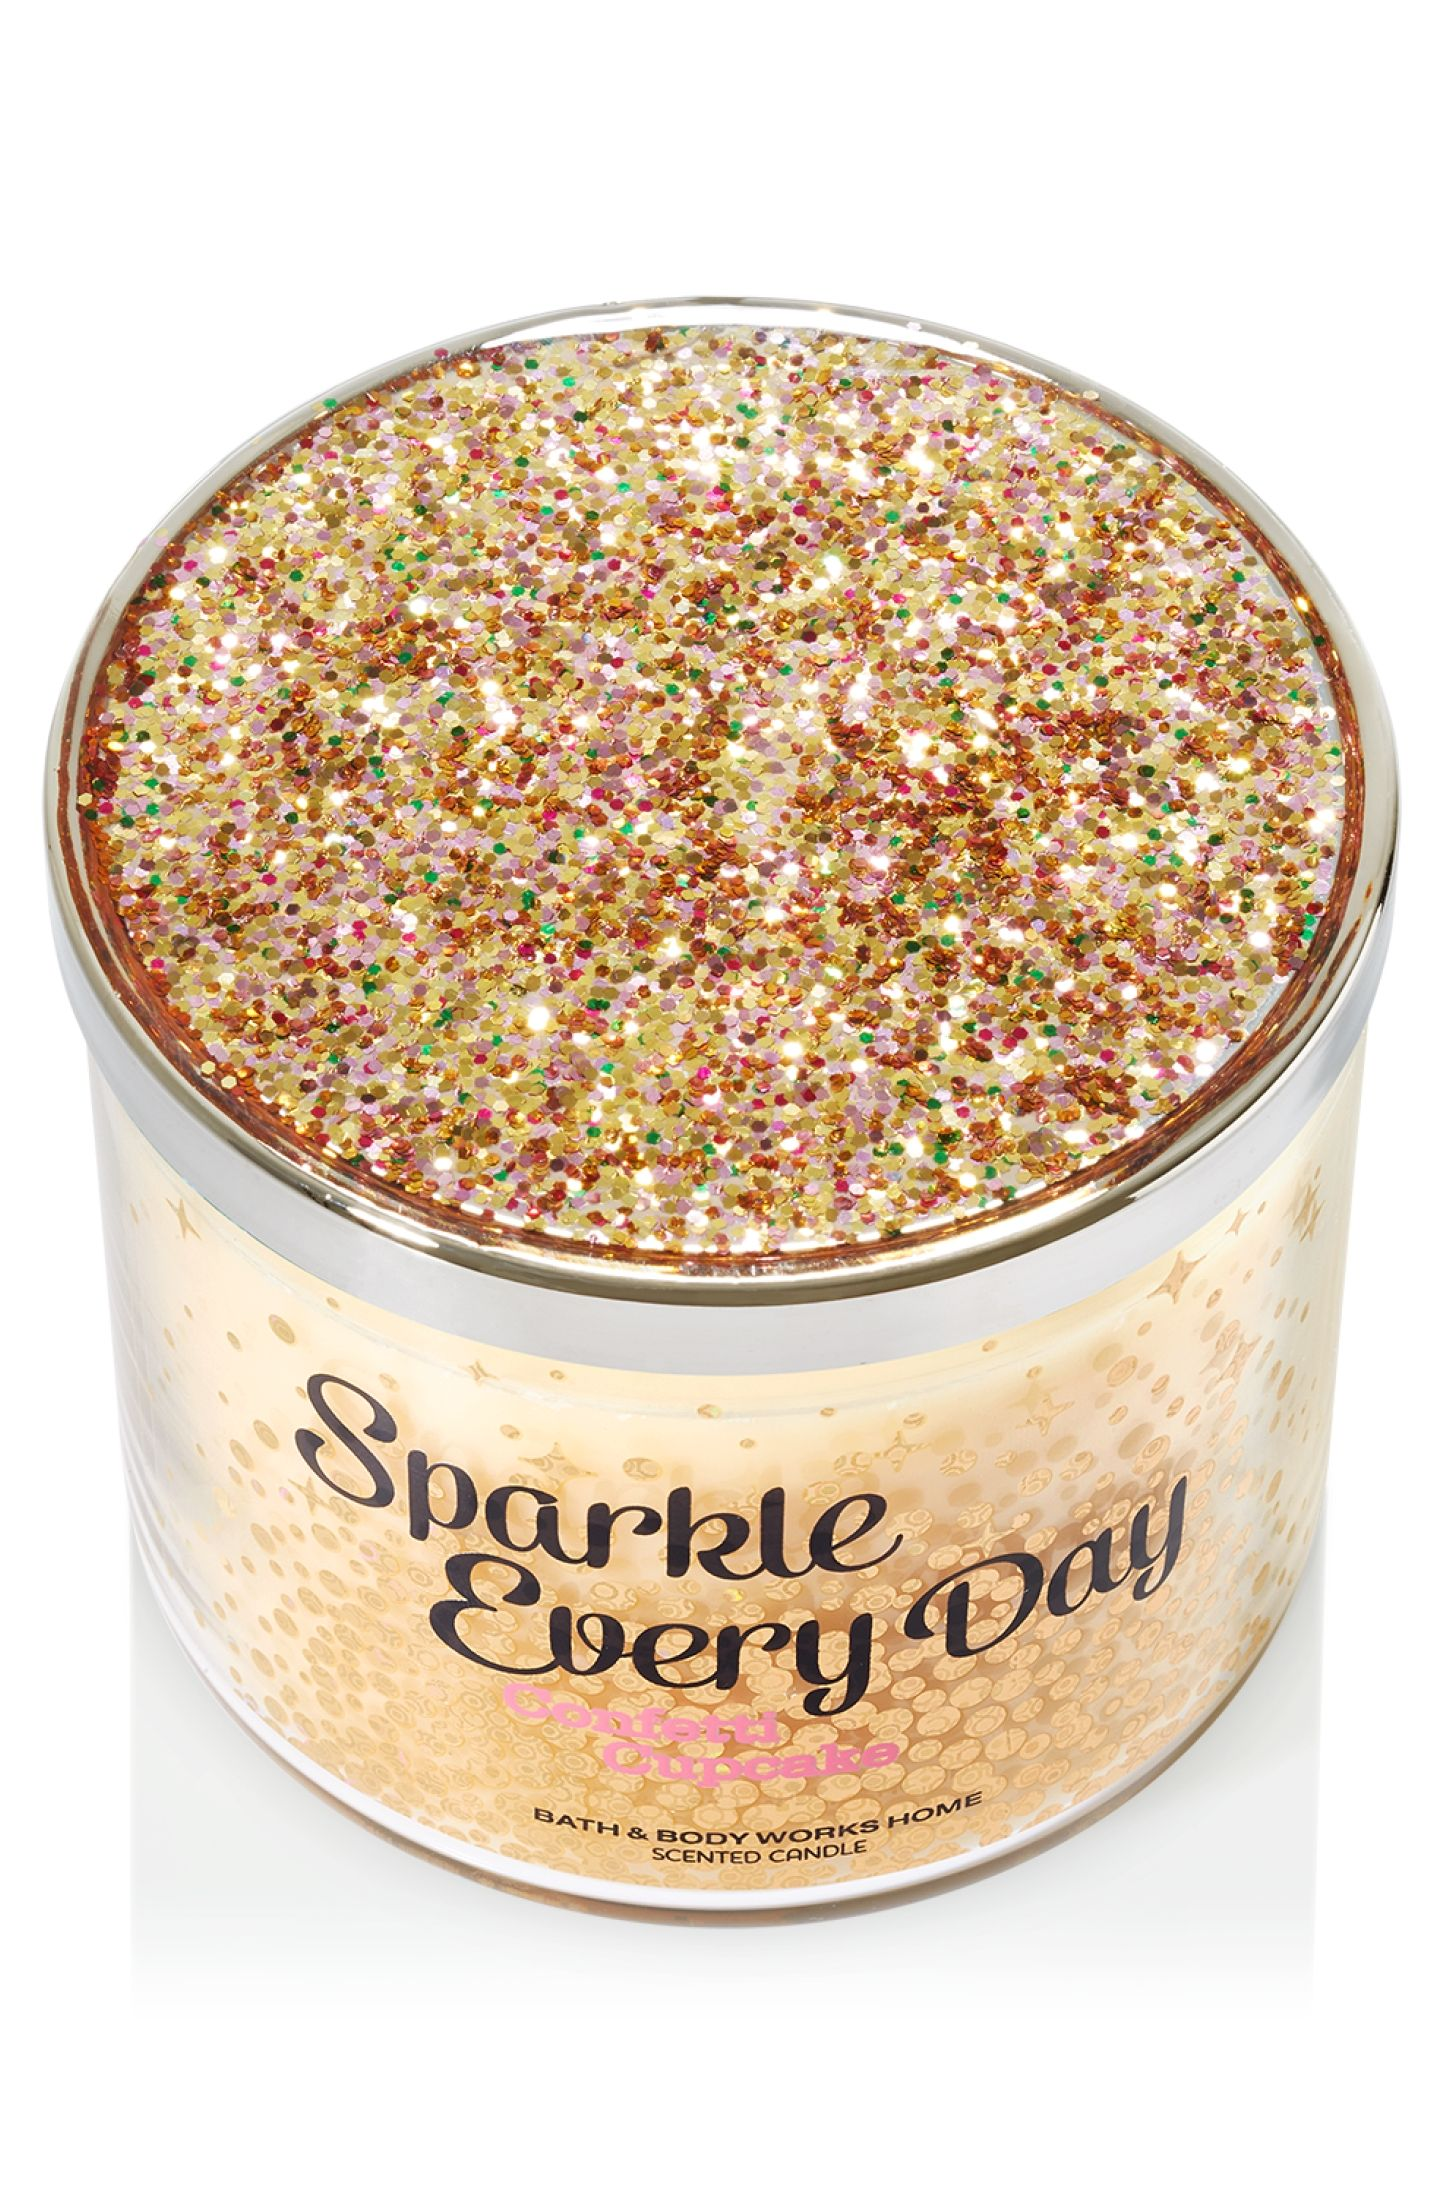 Sparkle Every Day 3-Wick Candle - Home Fragrance 1037181 ...